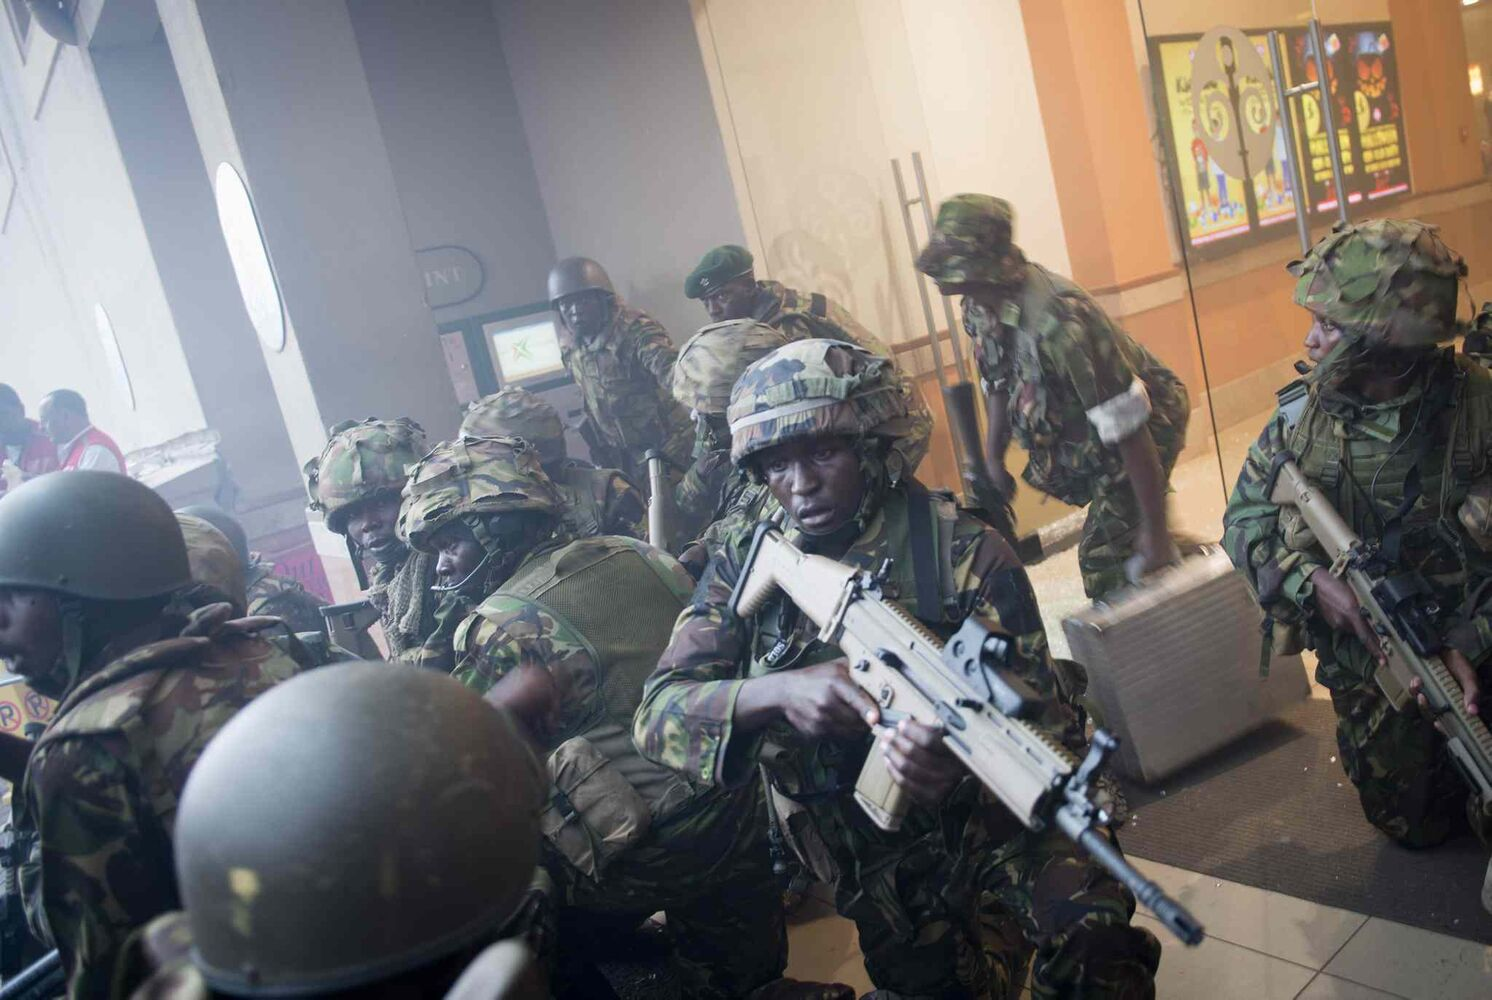 Armed police leave after entering the Westgate Mall in Nairobi, Kenya Saturday, Sept. 21, 2013. Gunmen threw grenades and opened fire Saturday, killing at least 22 people in an attack targeting non-Muslims at an upscale mall in Kenya's capital that was hosting a children's day event.